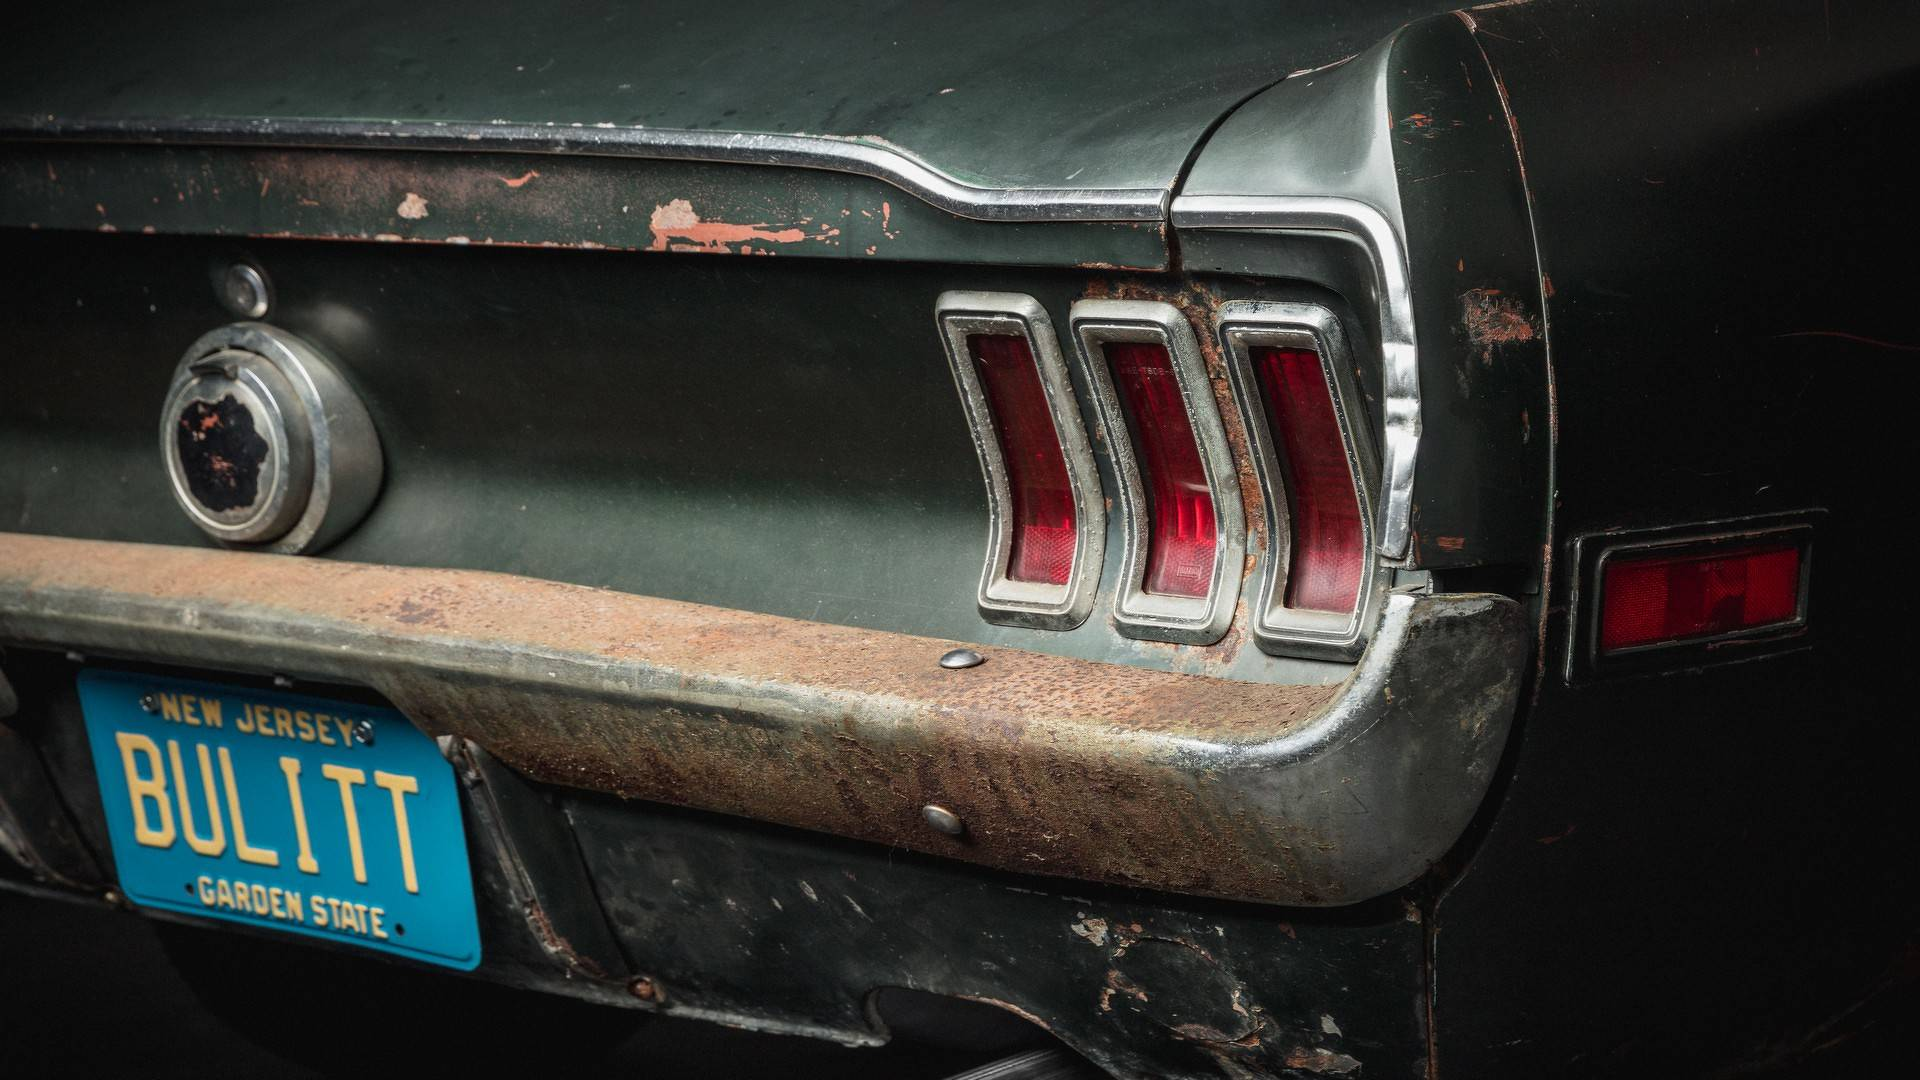 1968_Ford_Mustang_Bullit_original_movie_car_0012